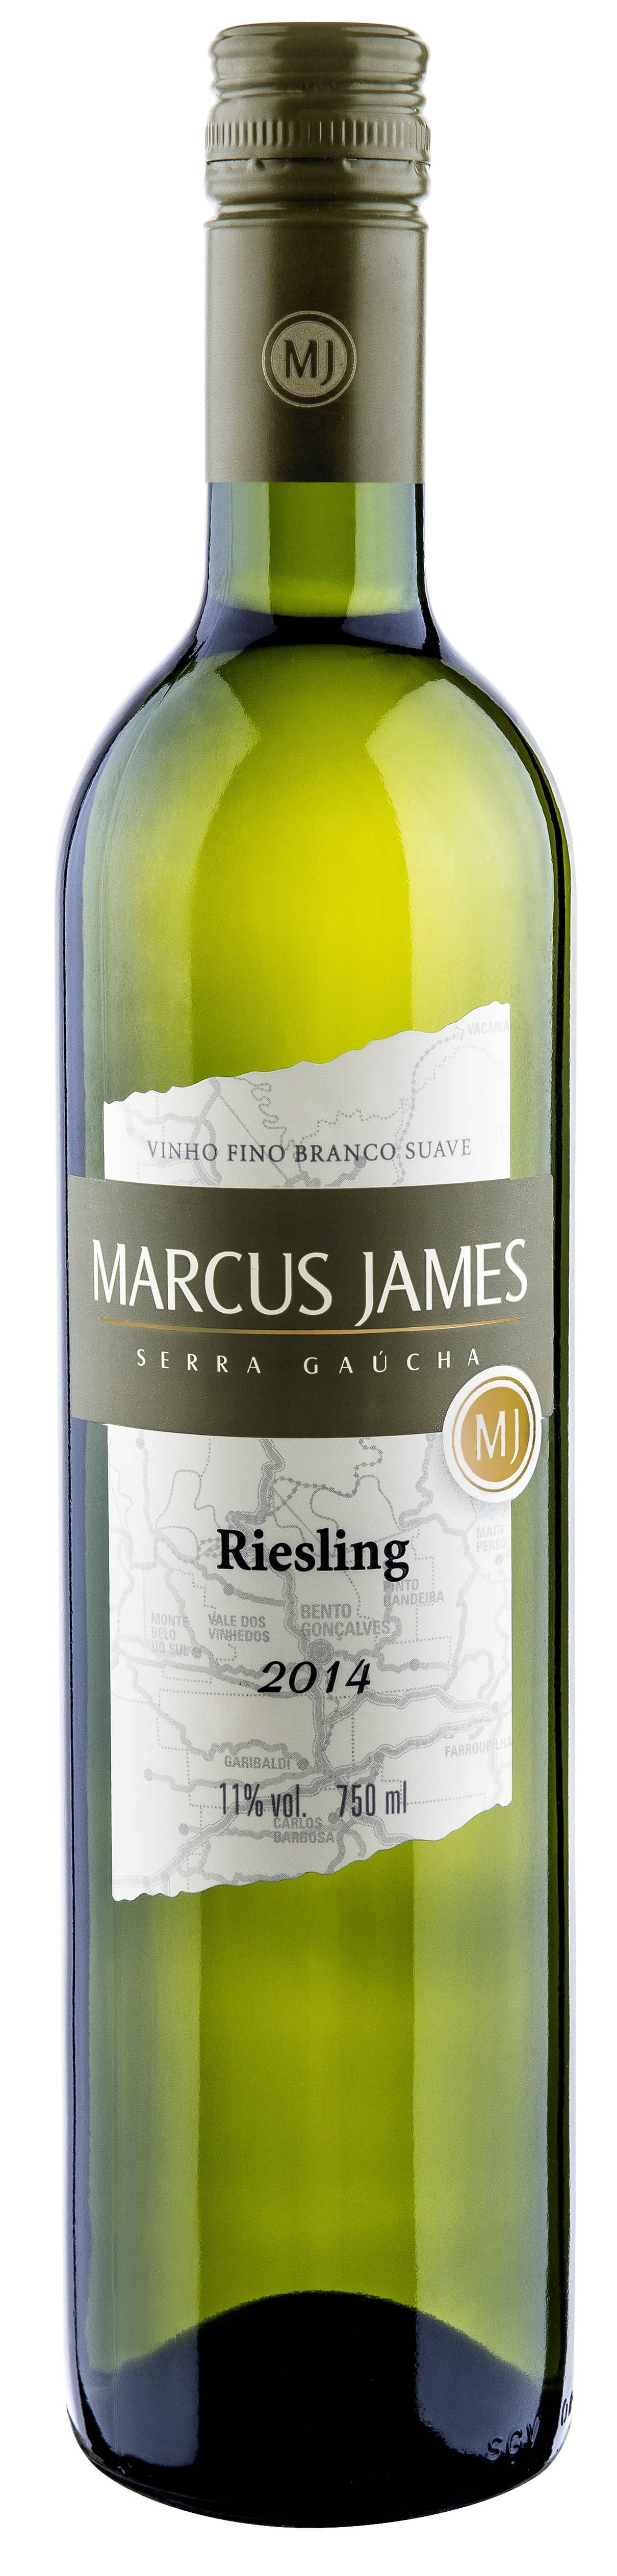 Marcus-James-Riesling